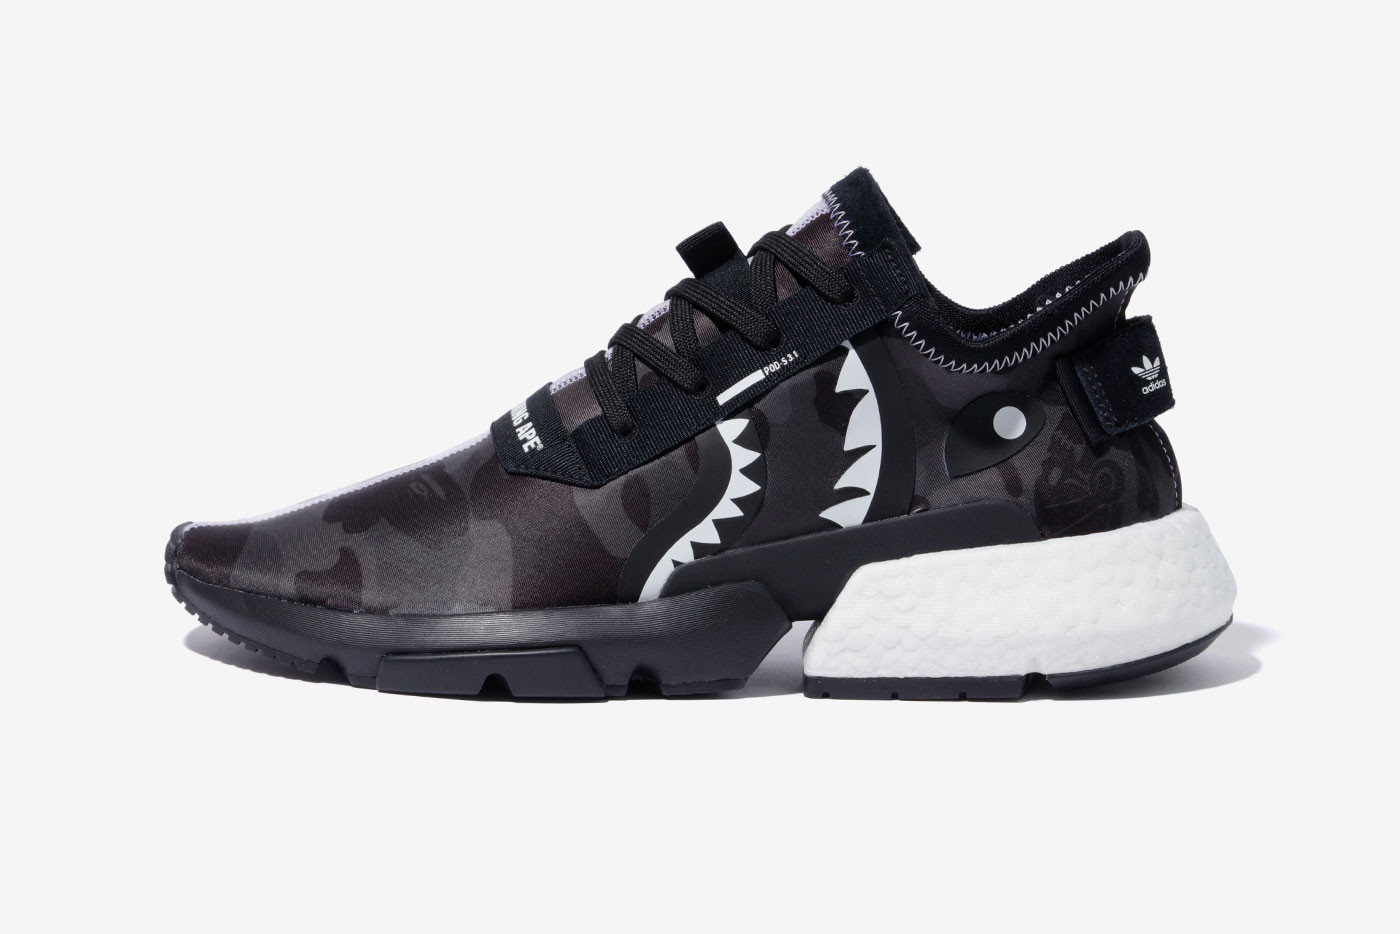 BAPE x NEIGHBORHOOD x adidas Originals Release nmd pod shark face motif black white 1st camo